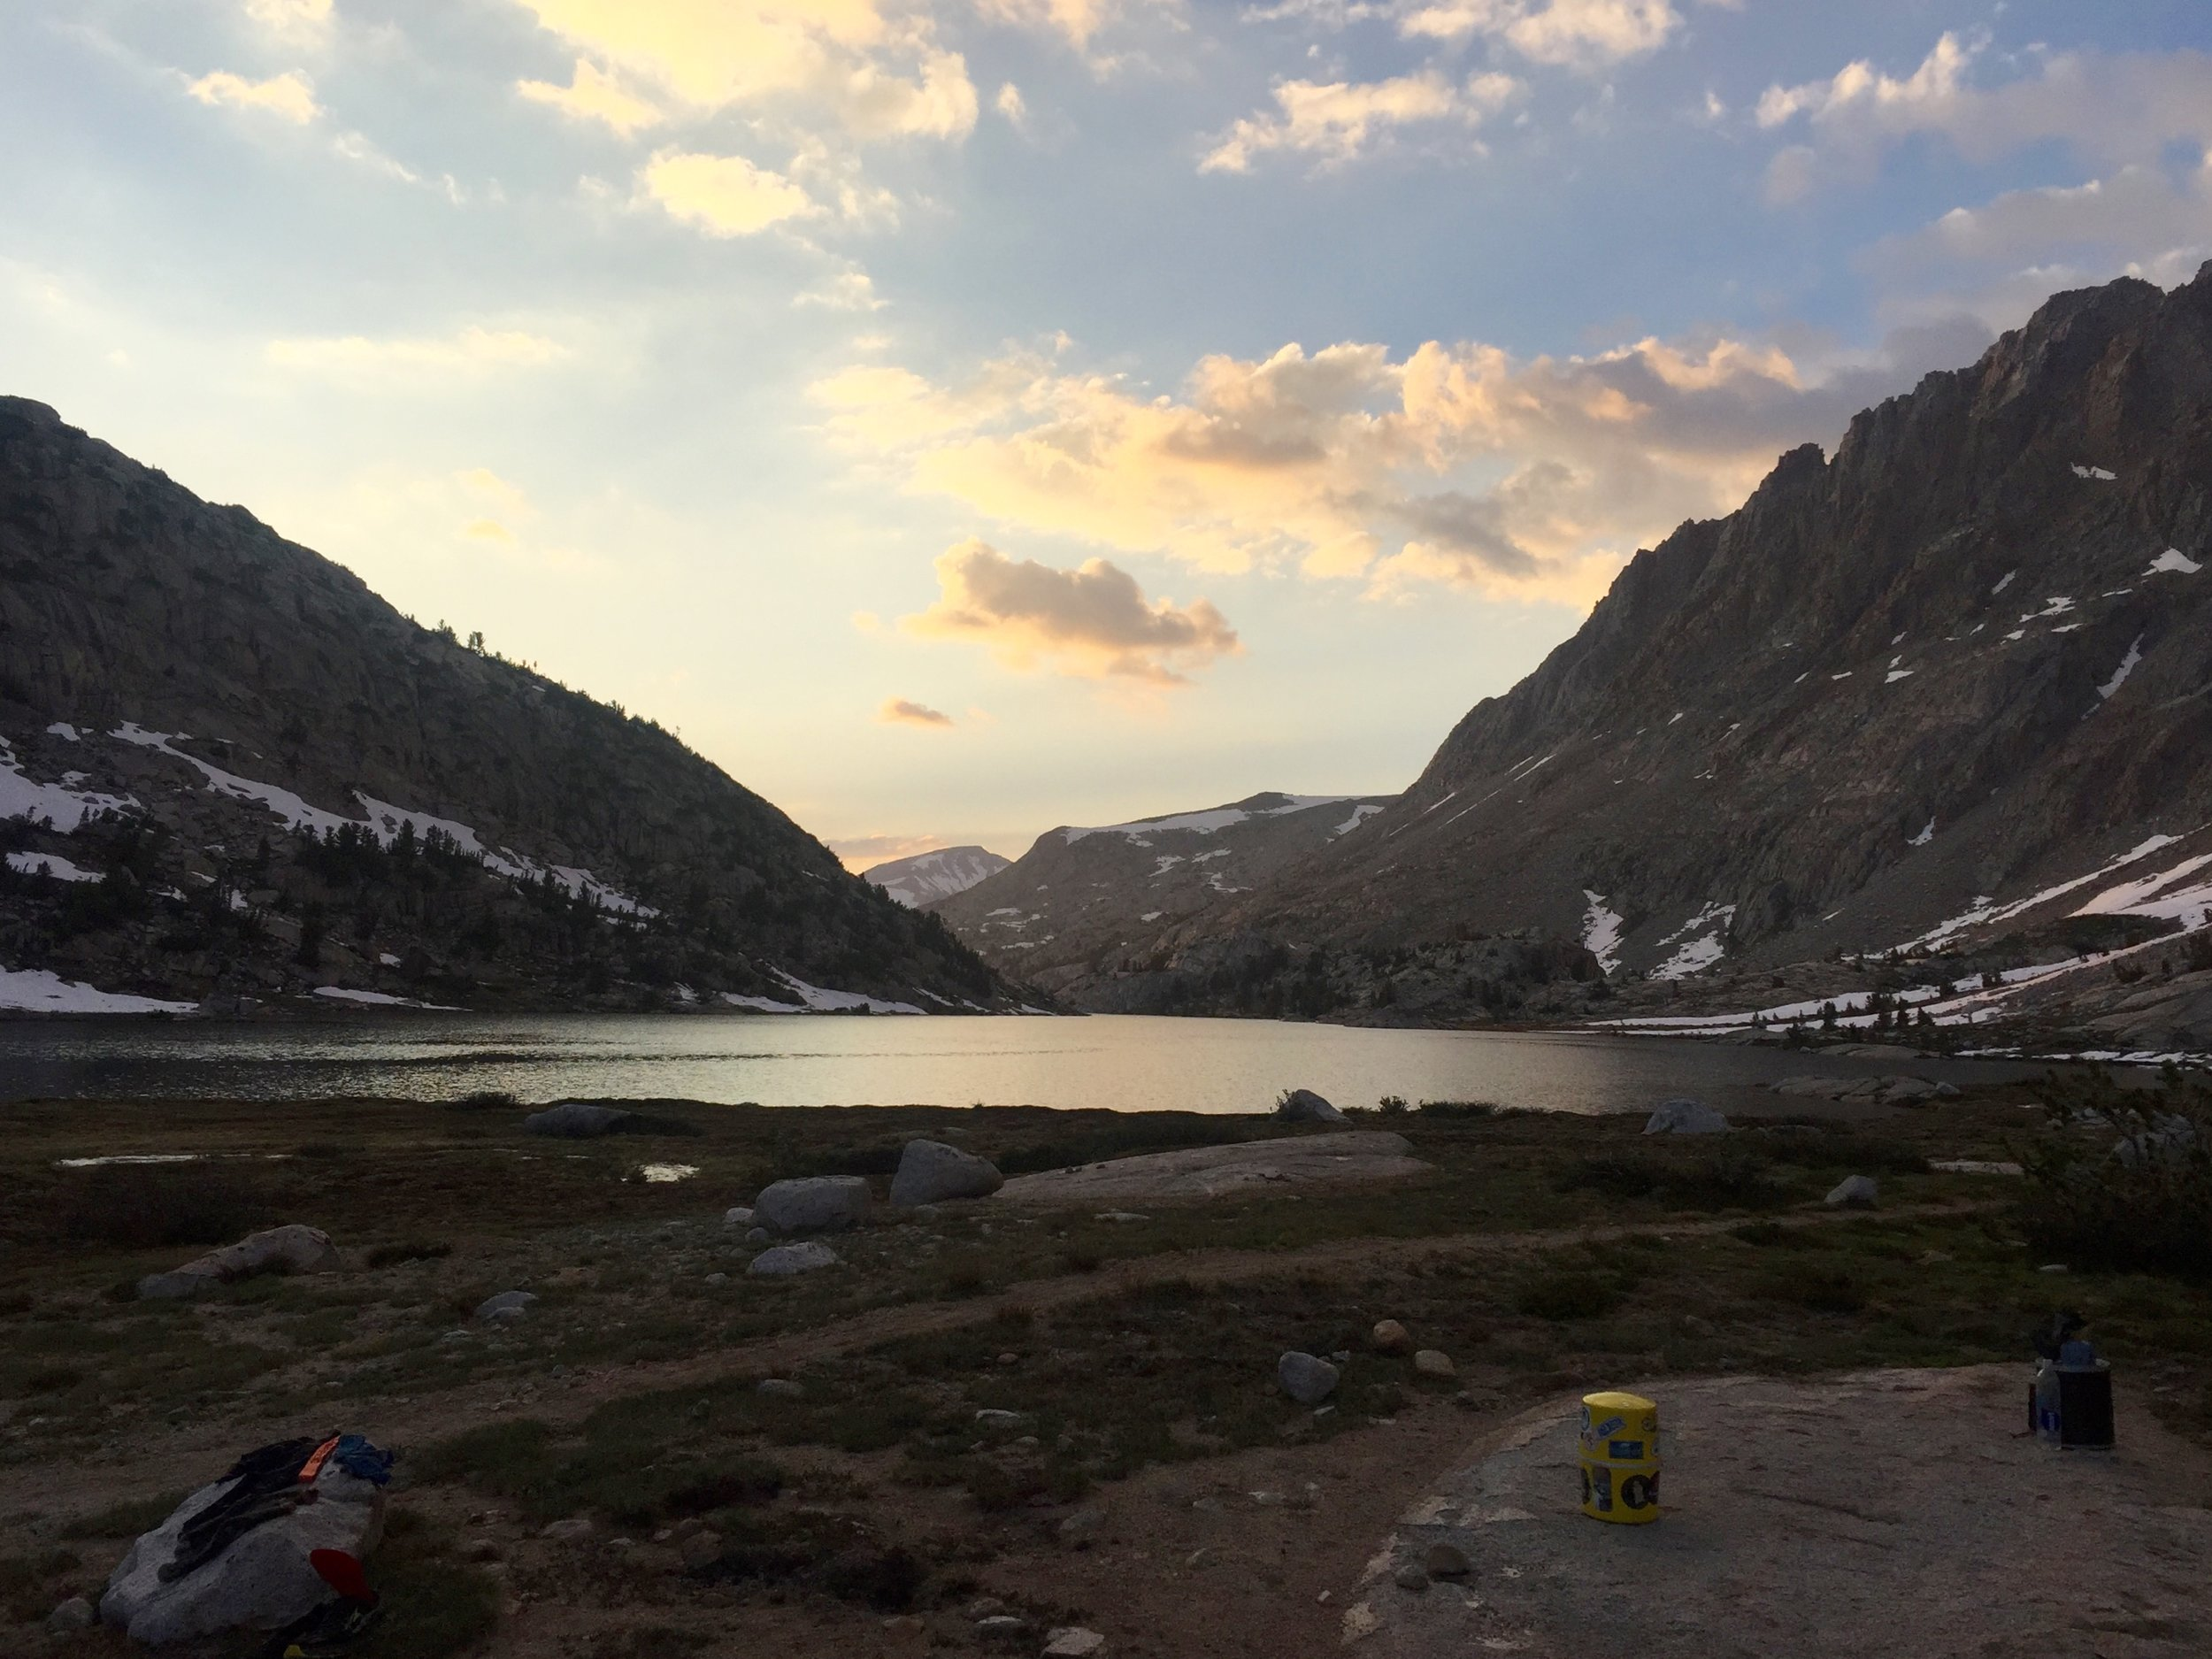 Evolution Lake...coldest but one the most scenic campsites.